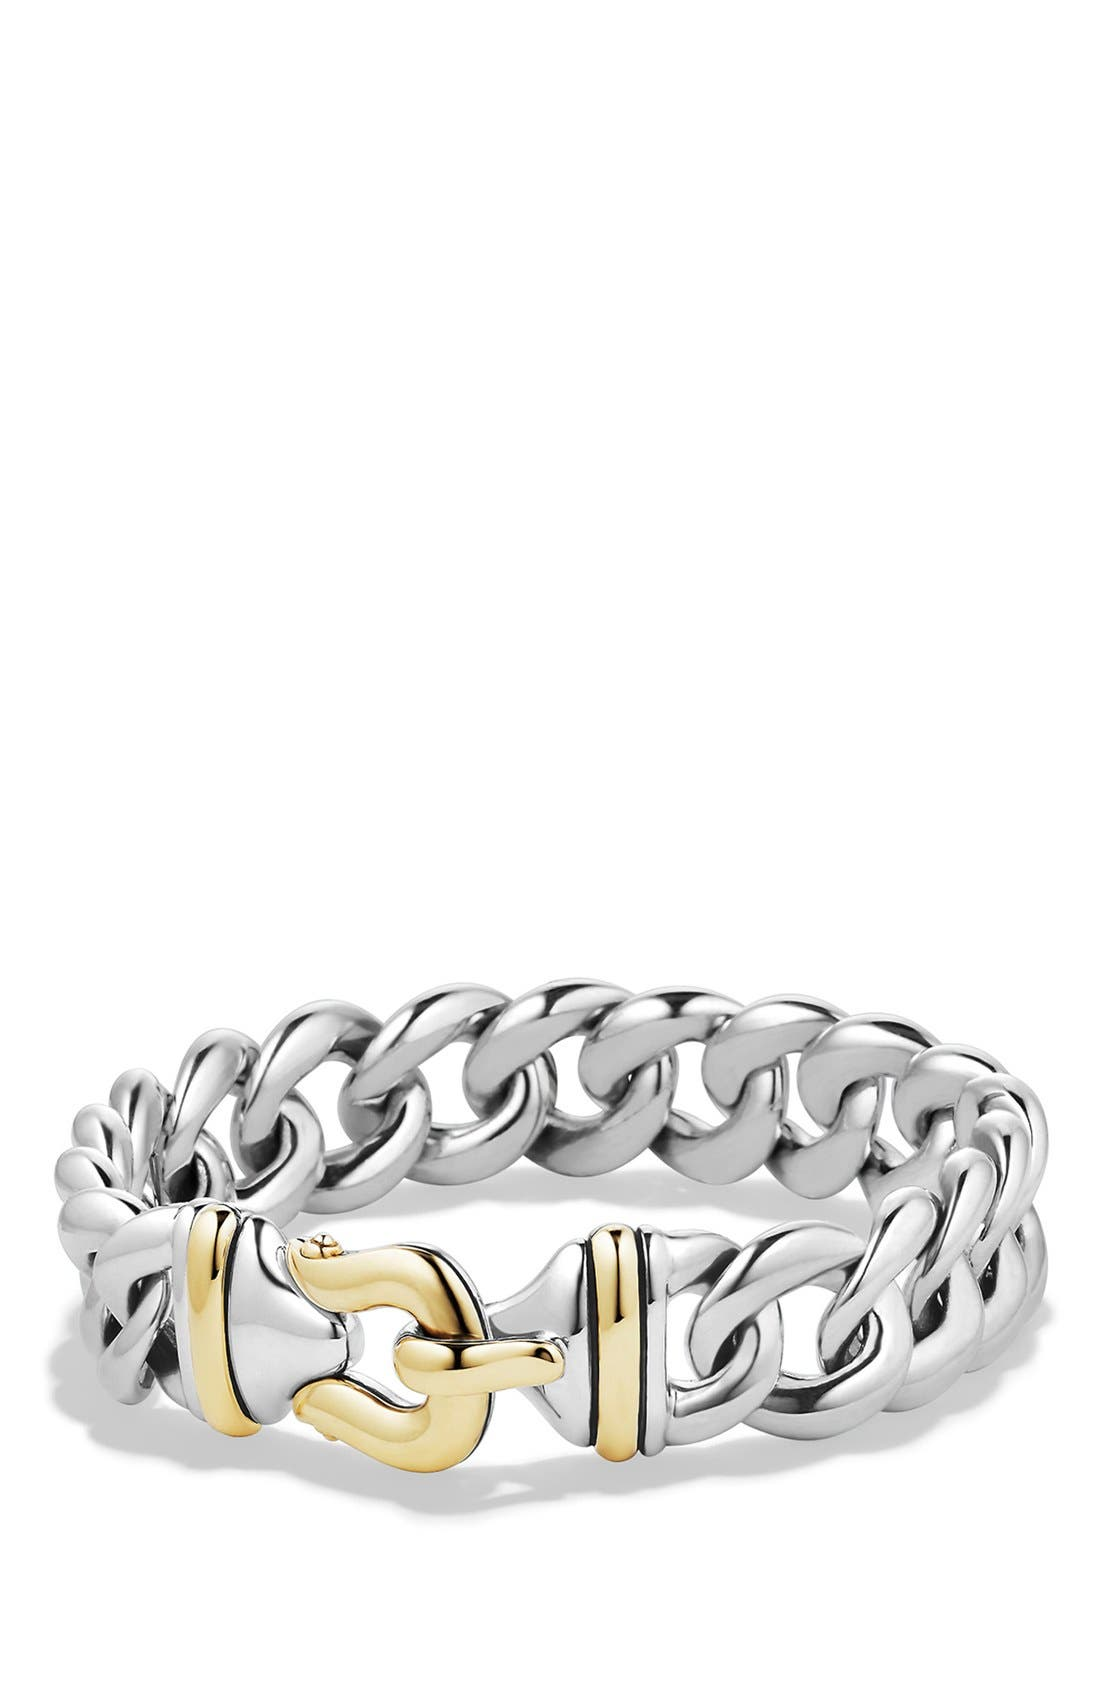 Alternate Image 1 Selected - David Yurman 'Cable Buckle' Buckle Single-Row Bracelet with Gold